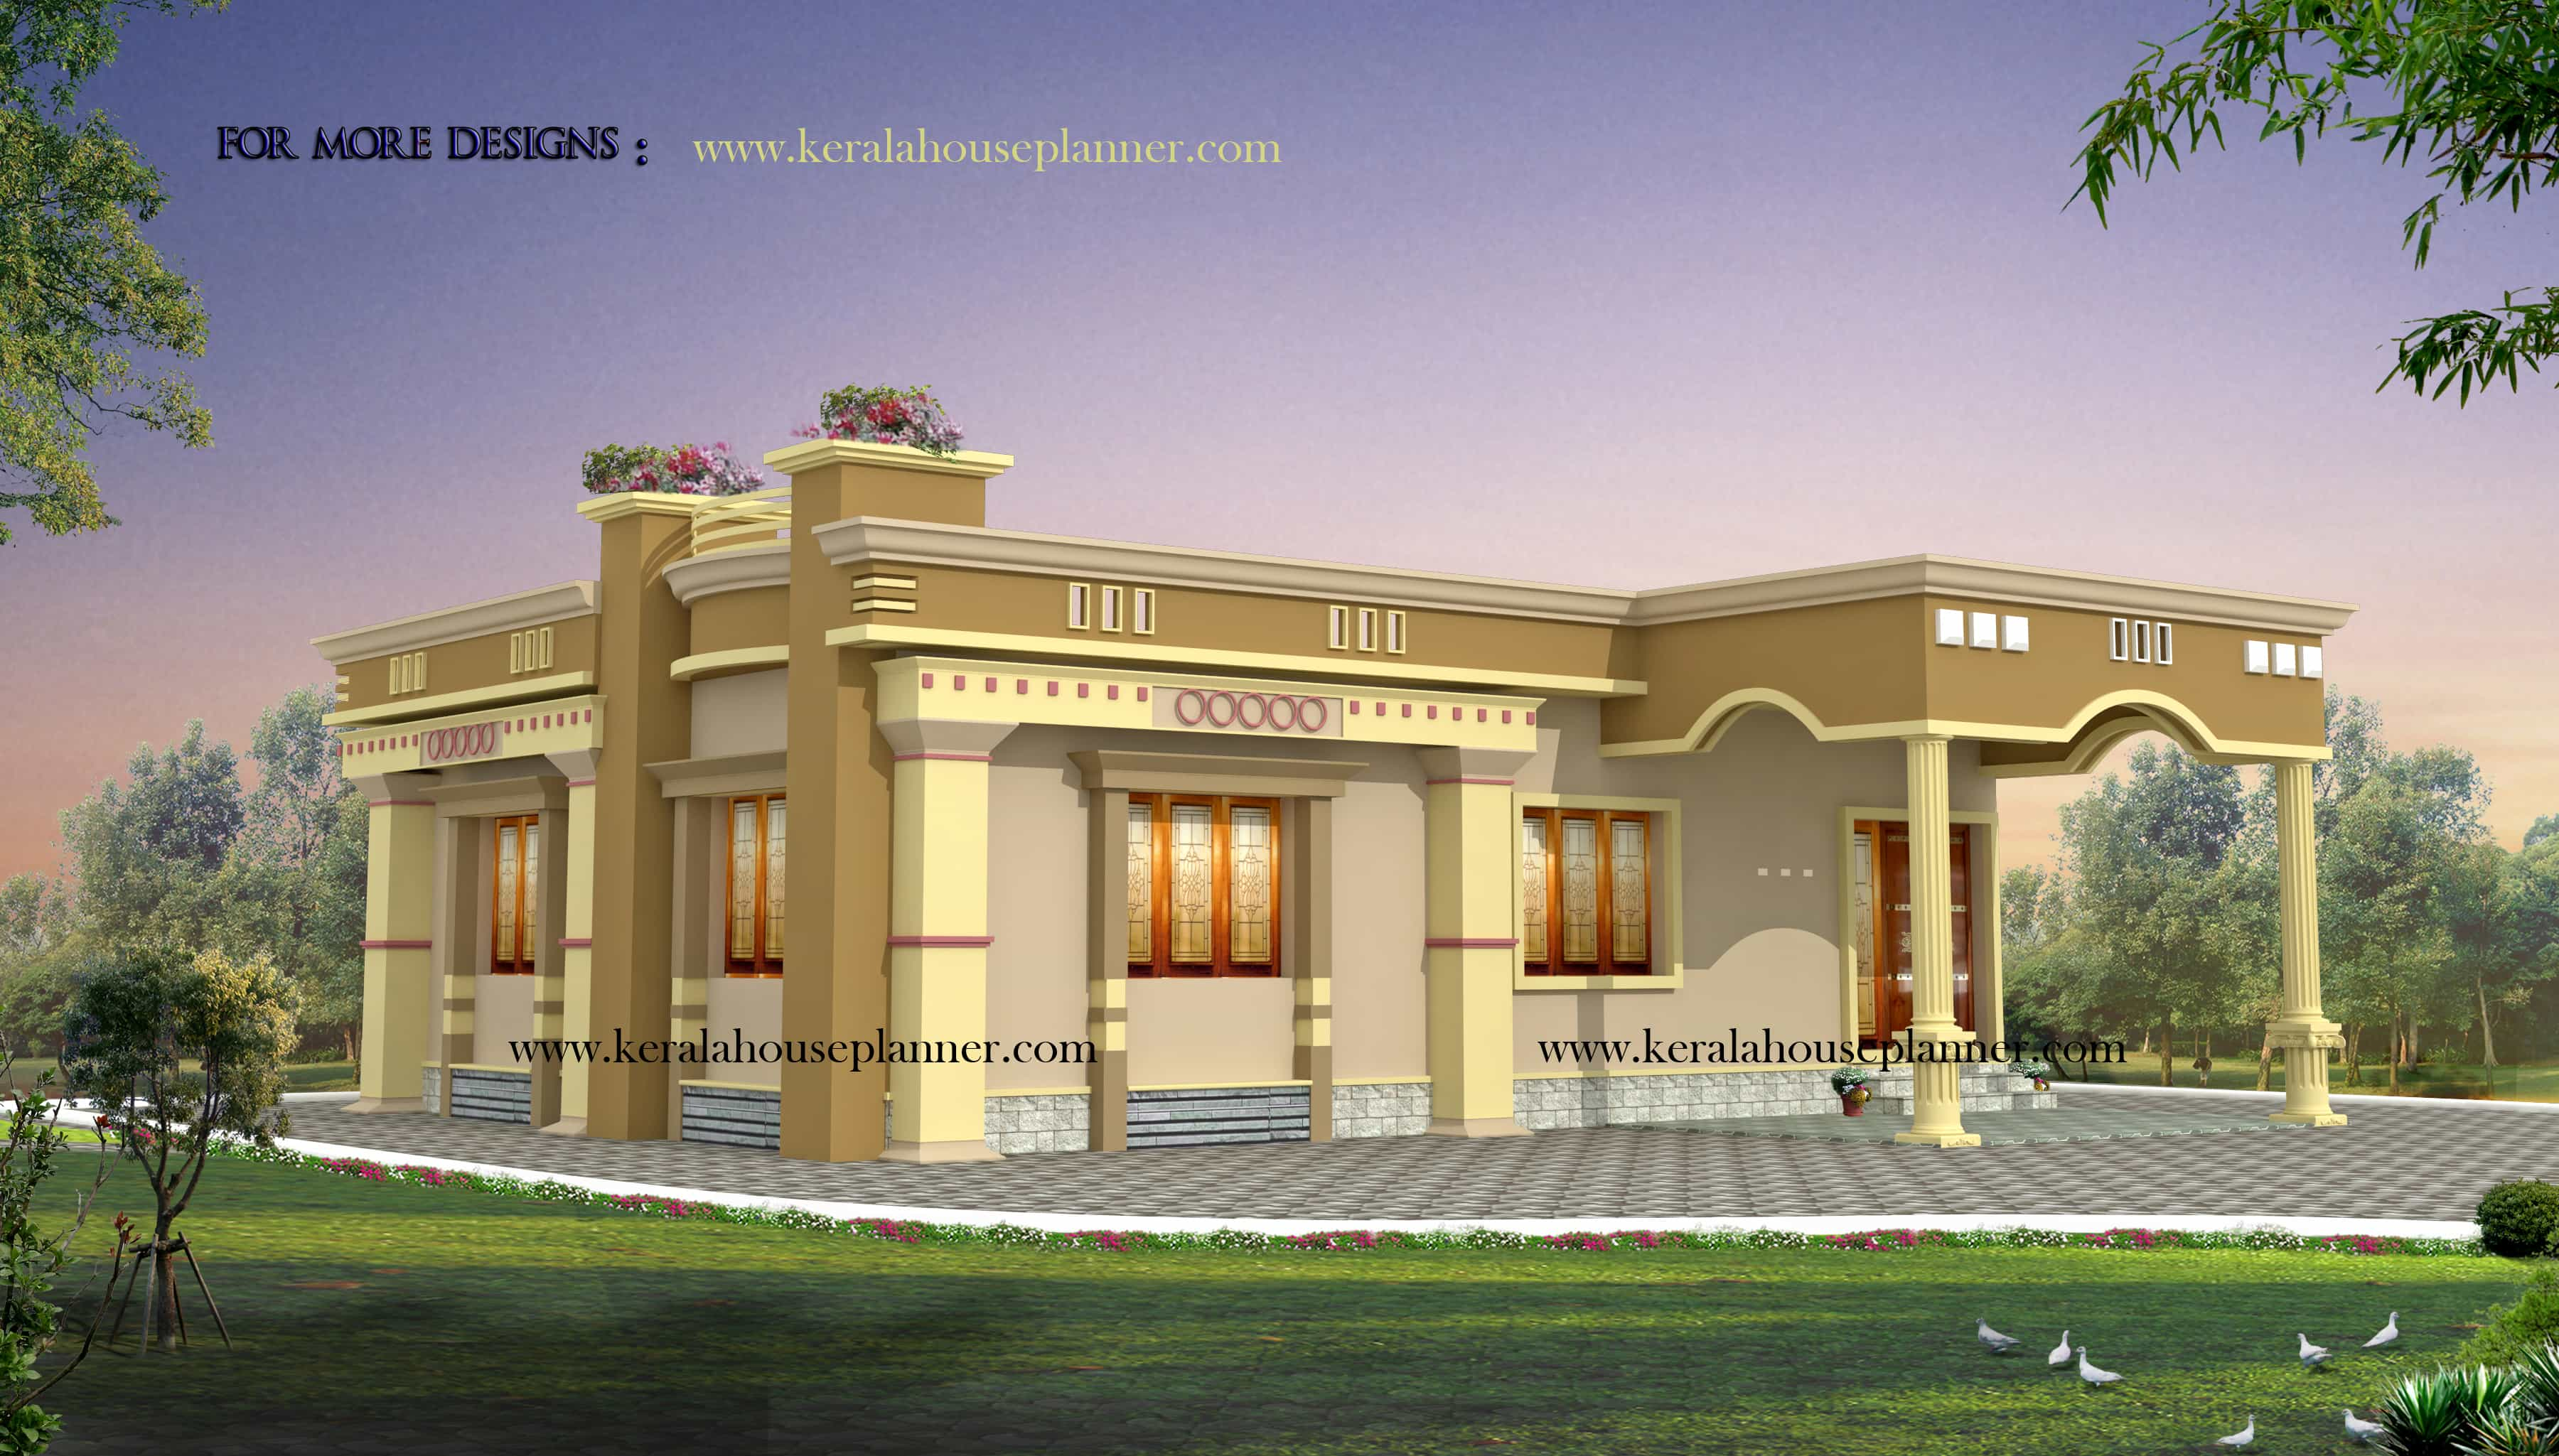 Kerala house plans 1200 sq ft with photos khp for Kerala house design plans